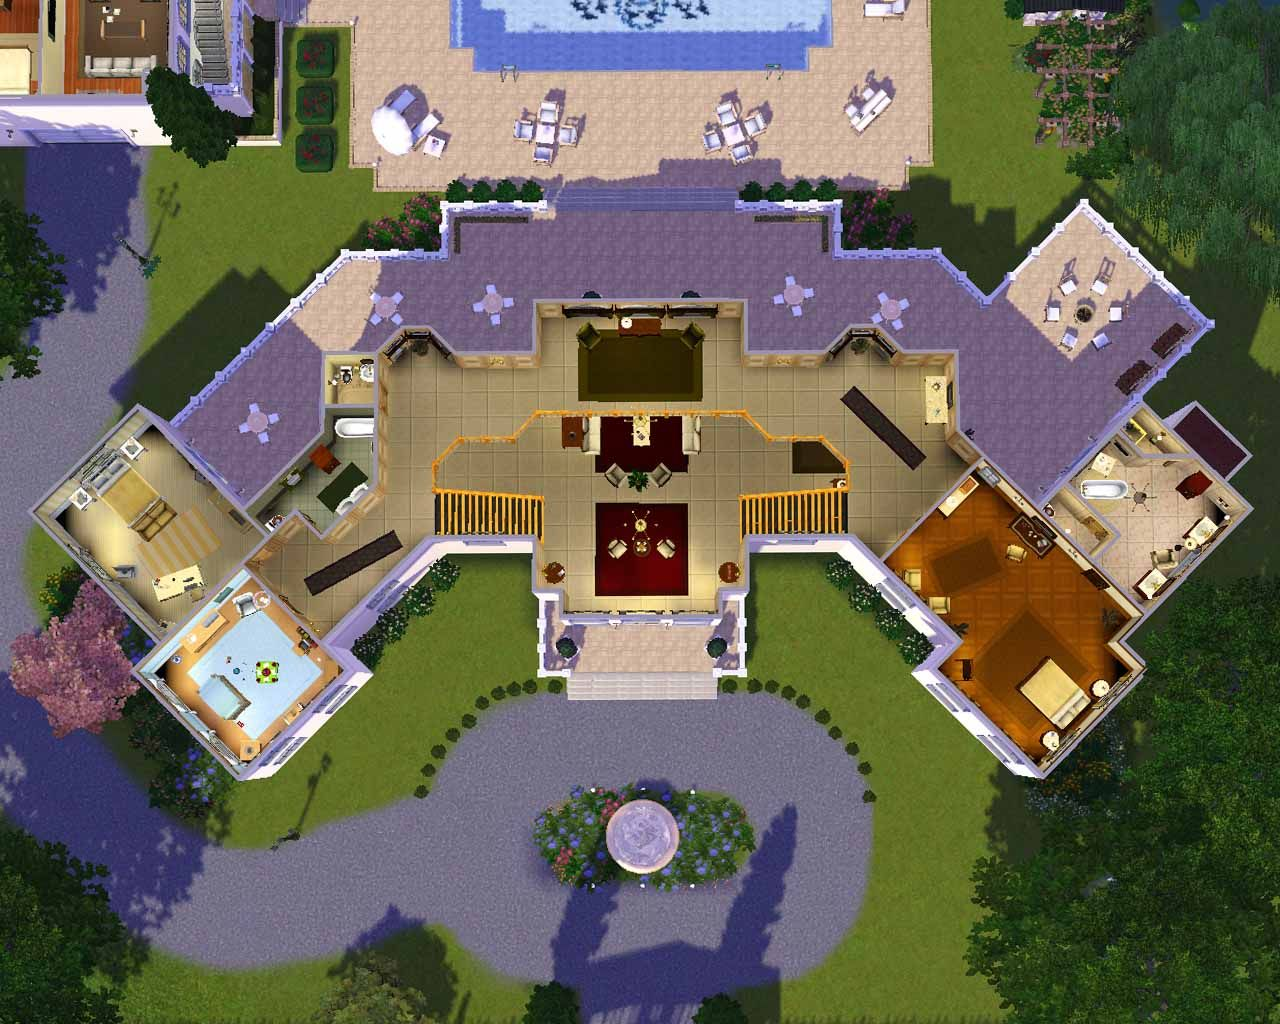 The sims 3 house designs google search idea the sims for Mansion house design